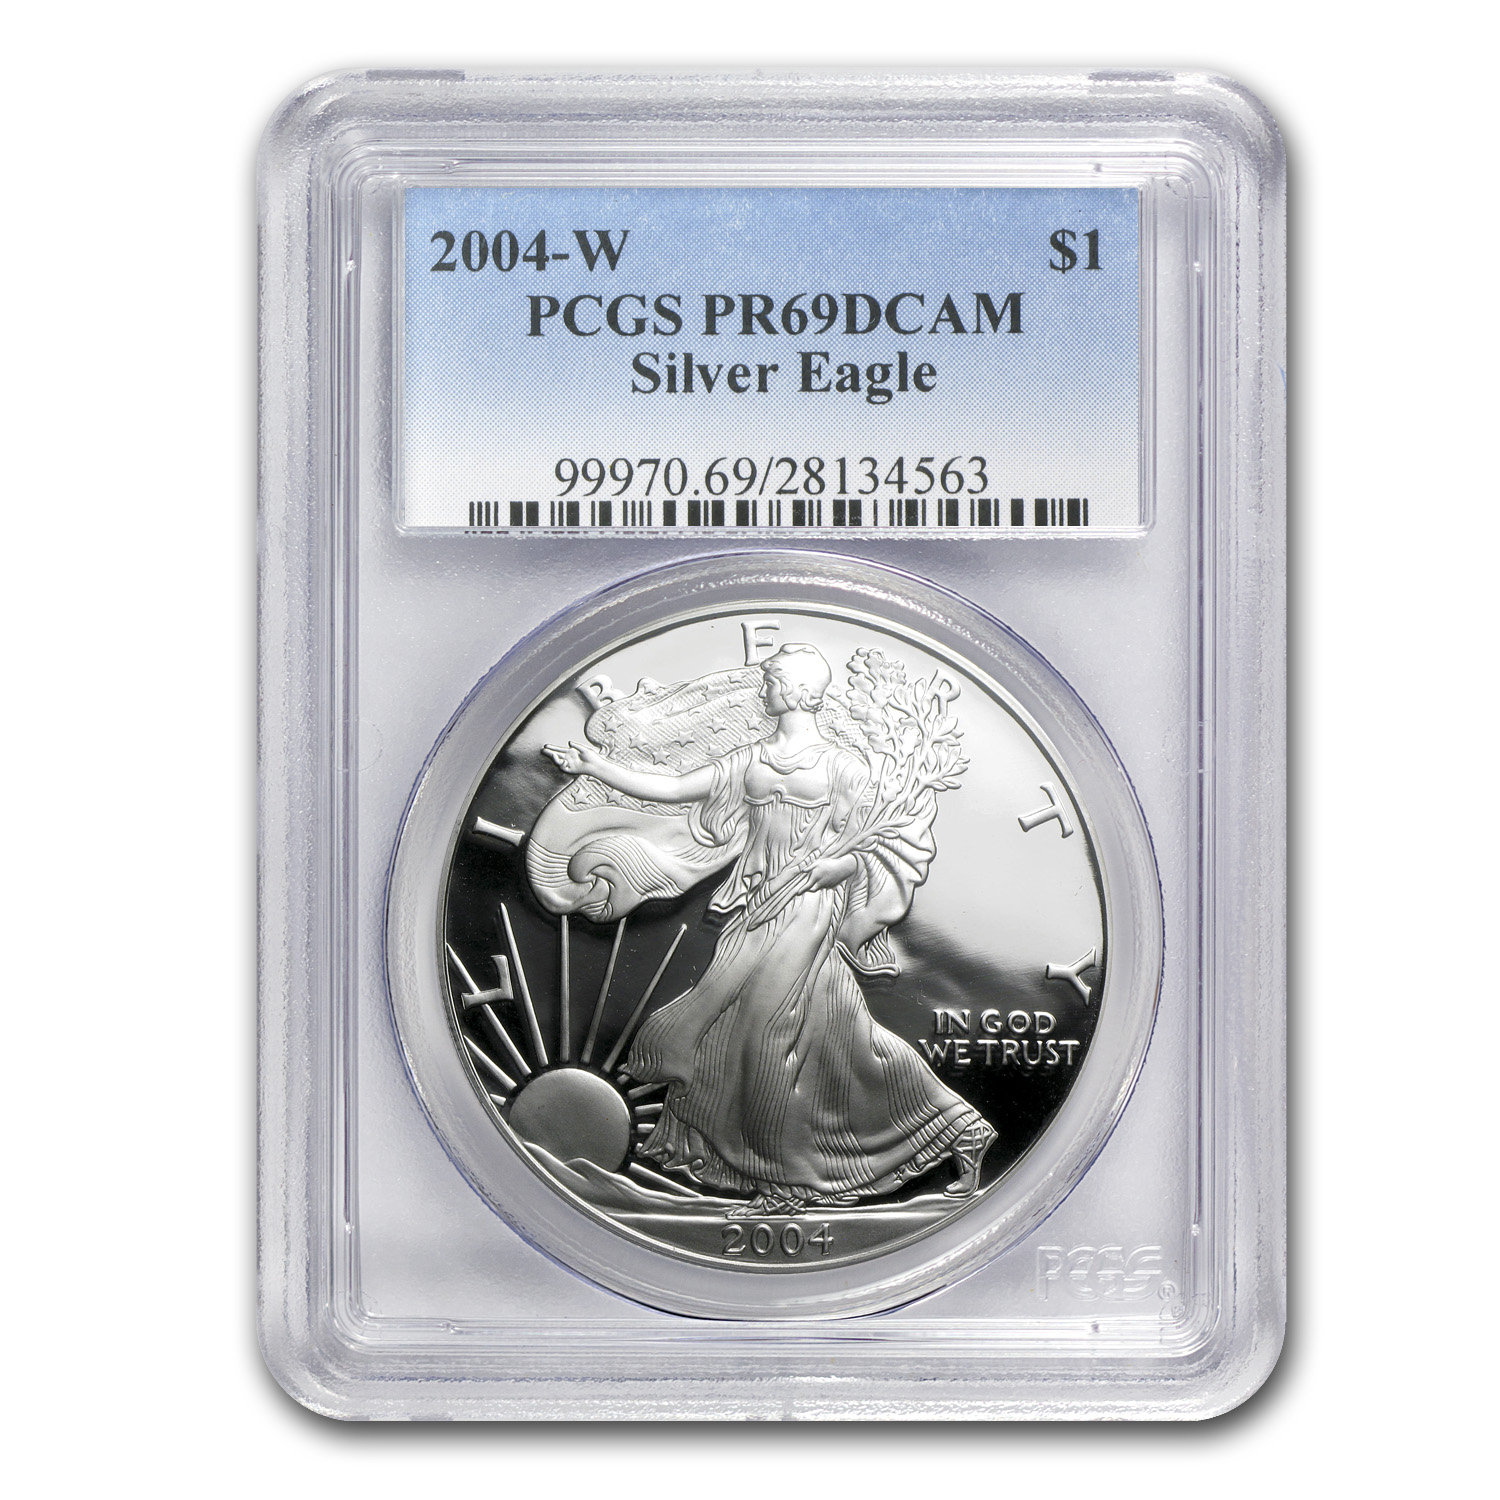 2004-W Proof Silver American Eagle PR-69 PCGS